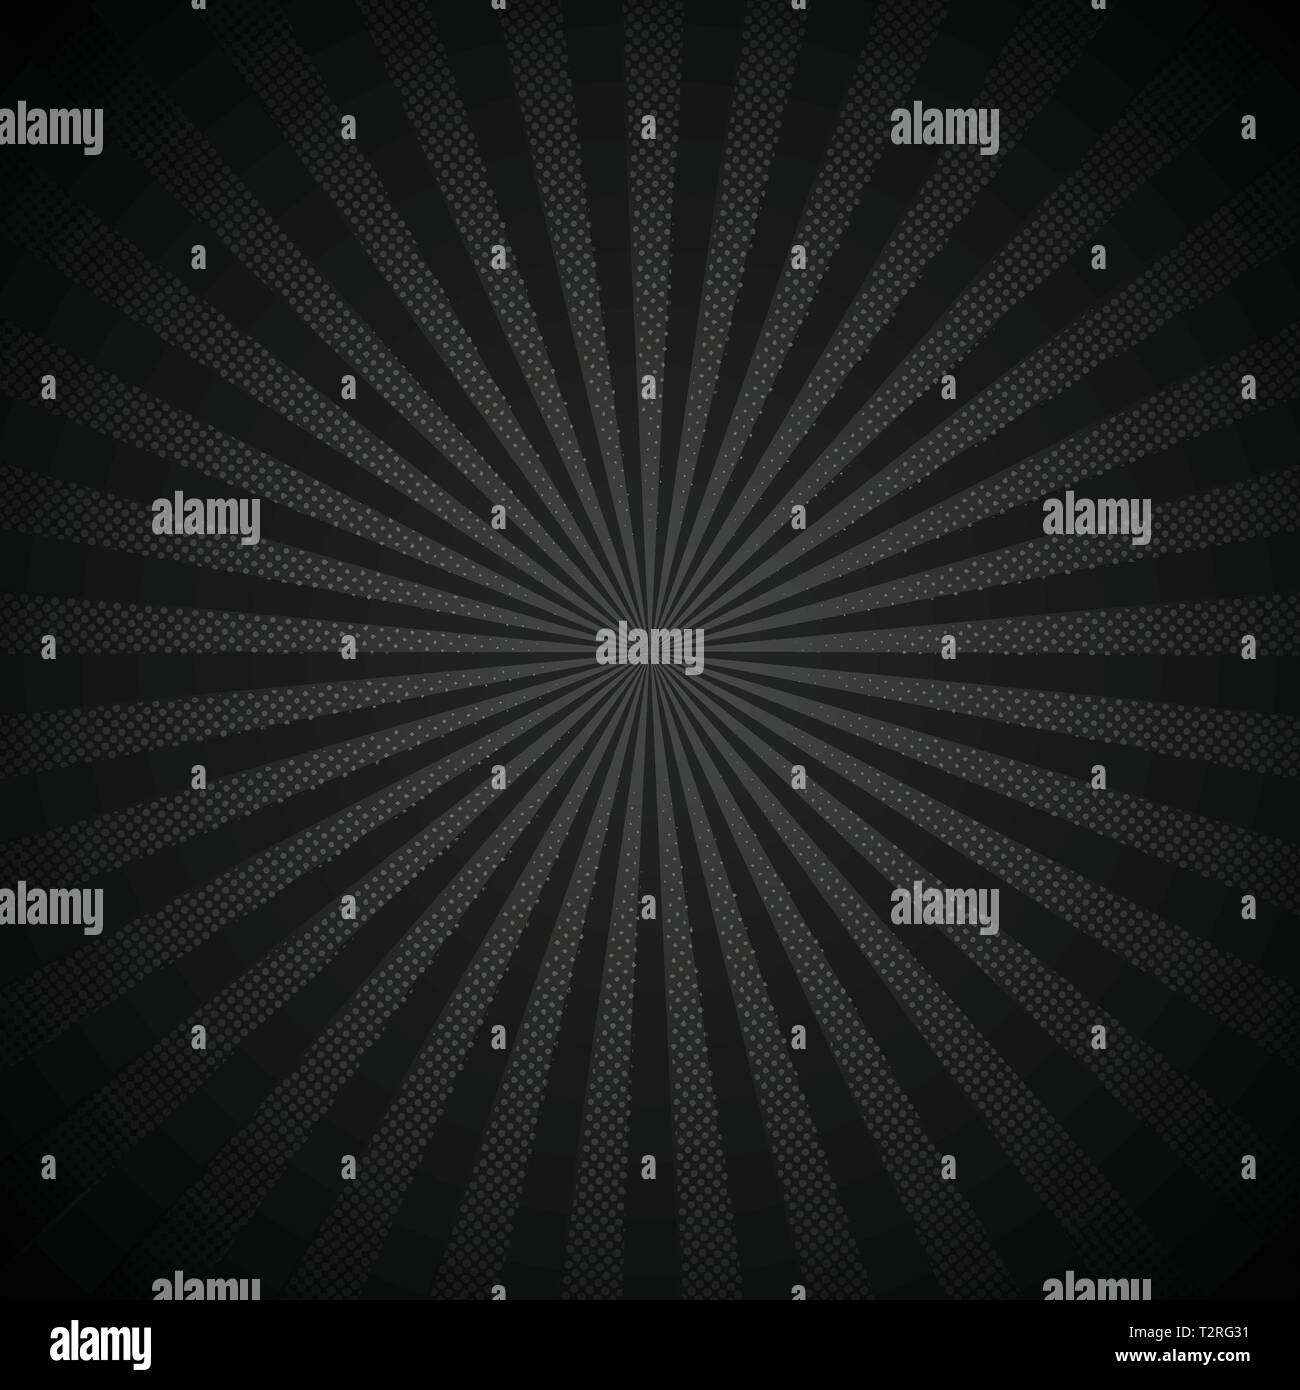 Absrtract retro shiny starburst black background with dots pattern texture halftone style. Vintage rays backdrop, boom, comic. Cartoon pop art templat - Stock Image